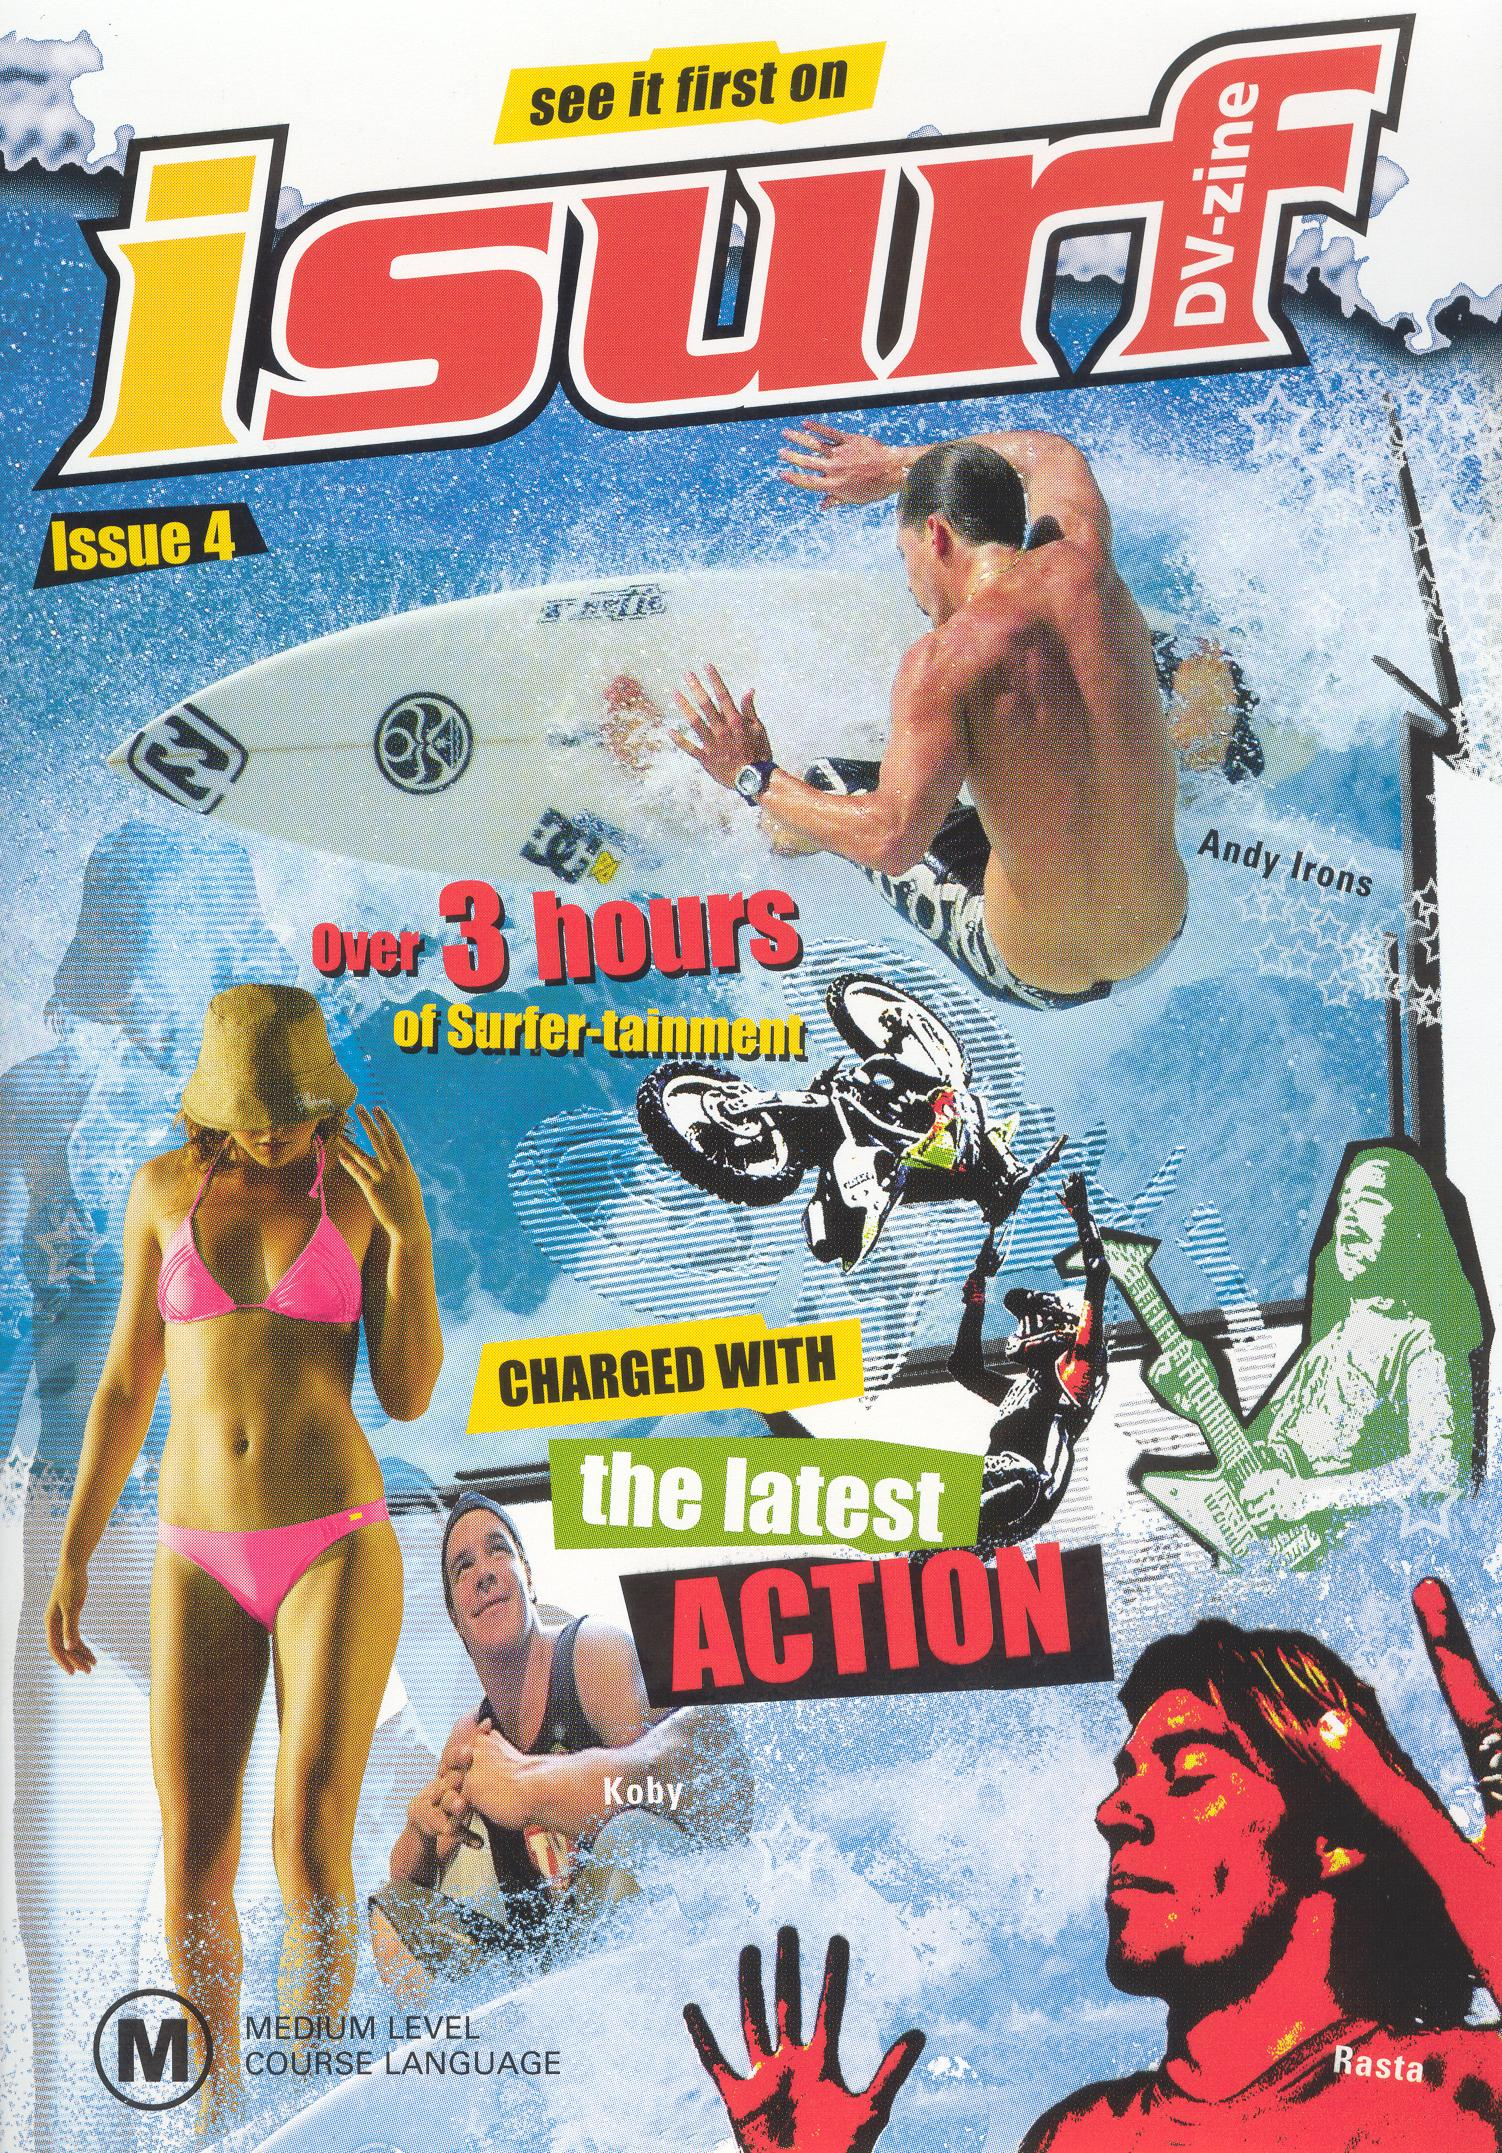 Isurf DV-Zine Issue, Vol. 4